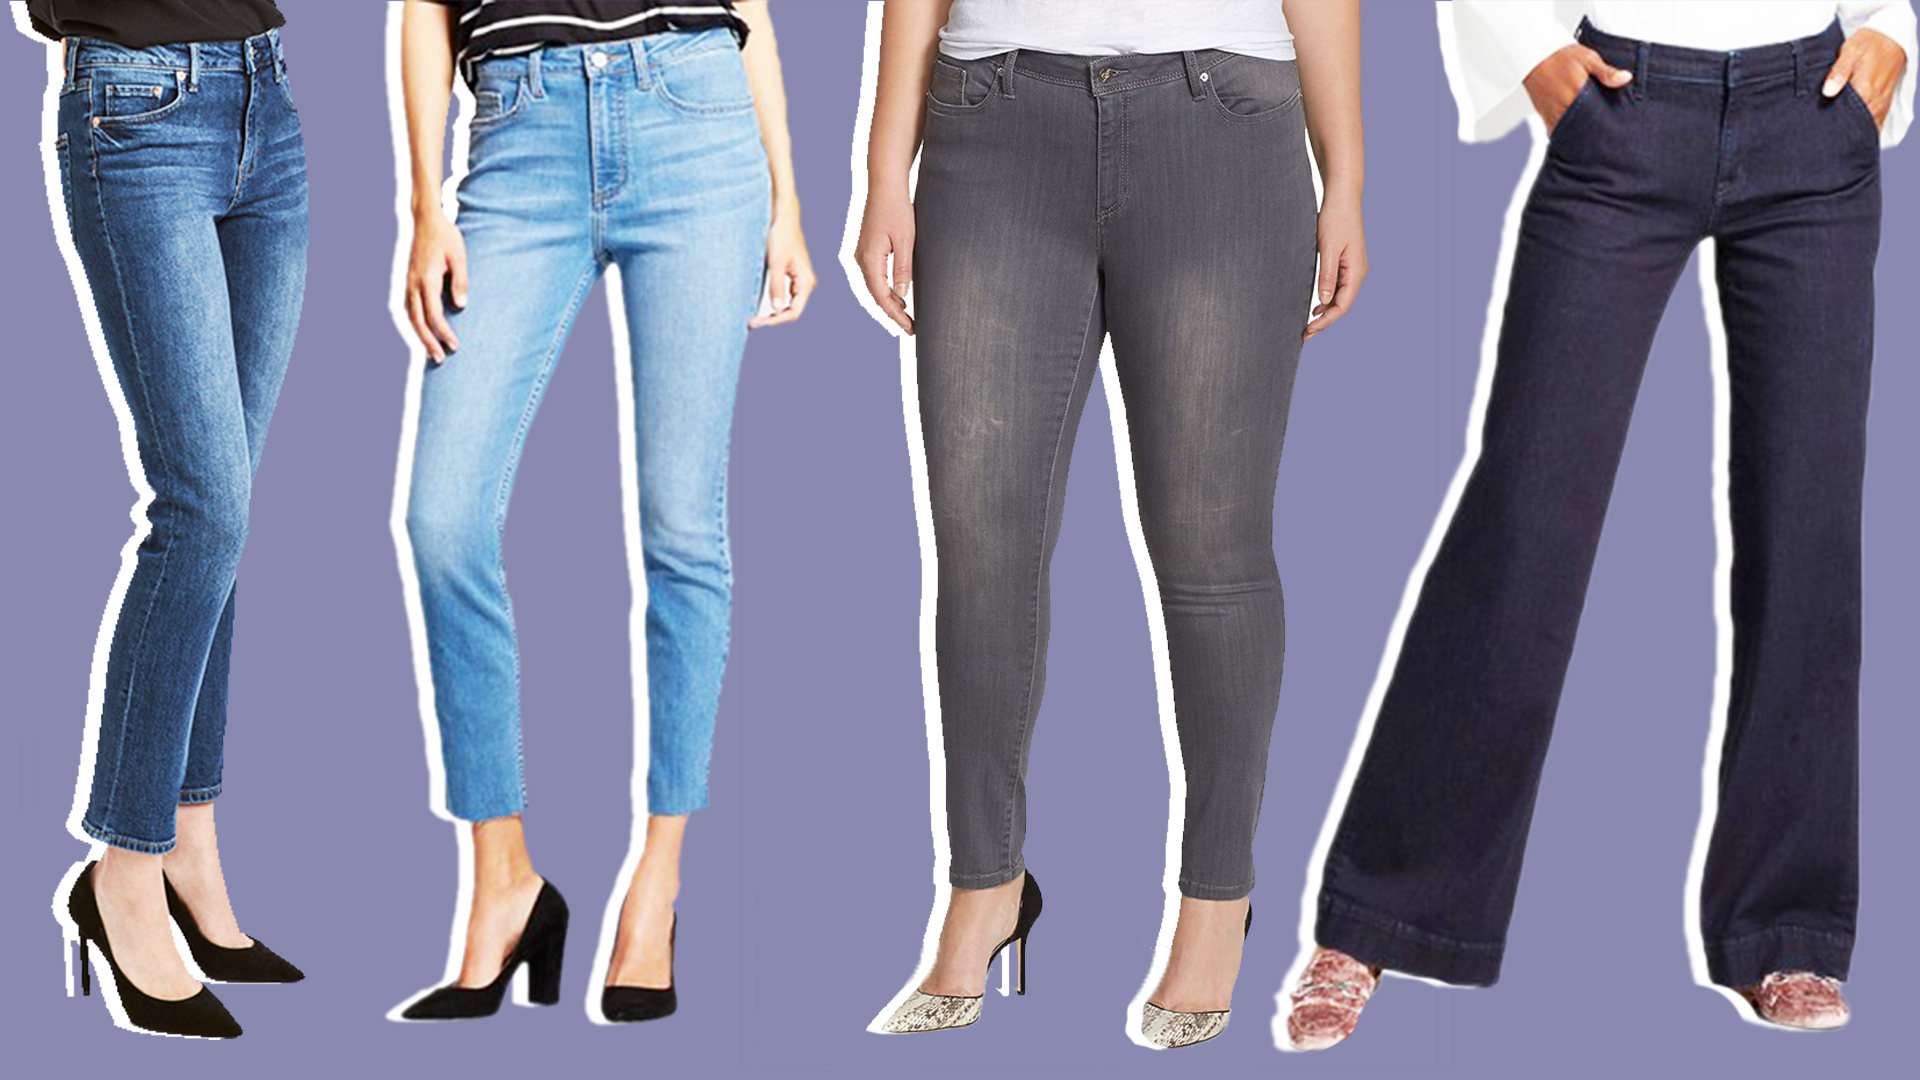 51a4b0def24e4 The best places to buy jeans online for less than $50